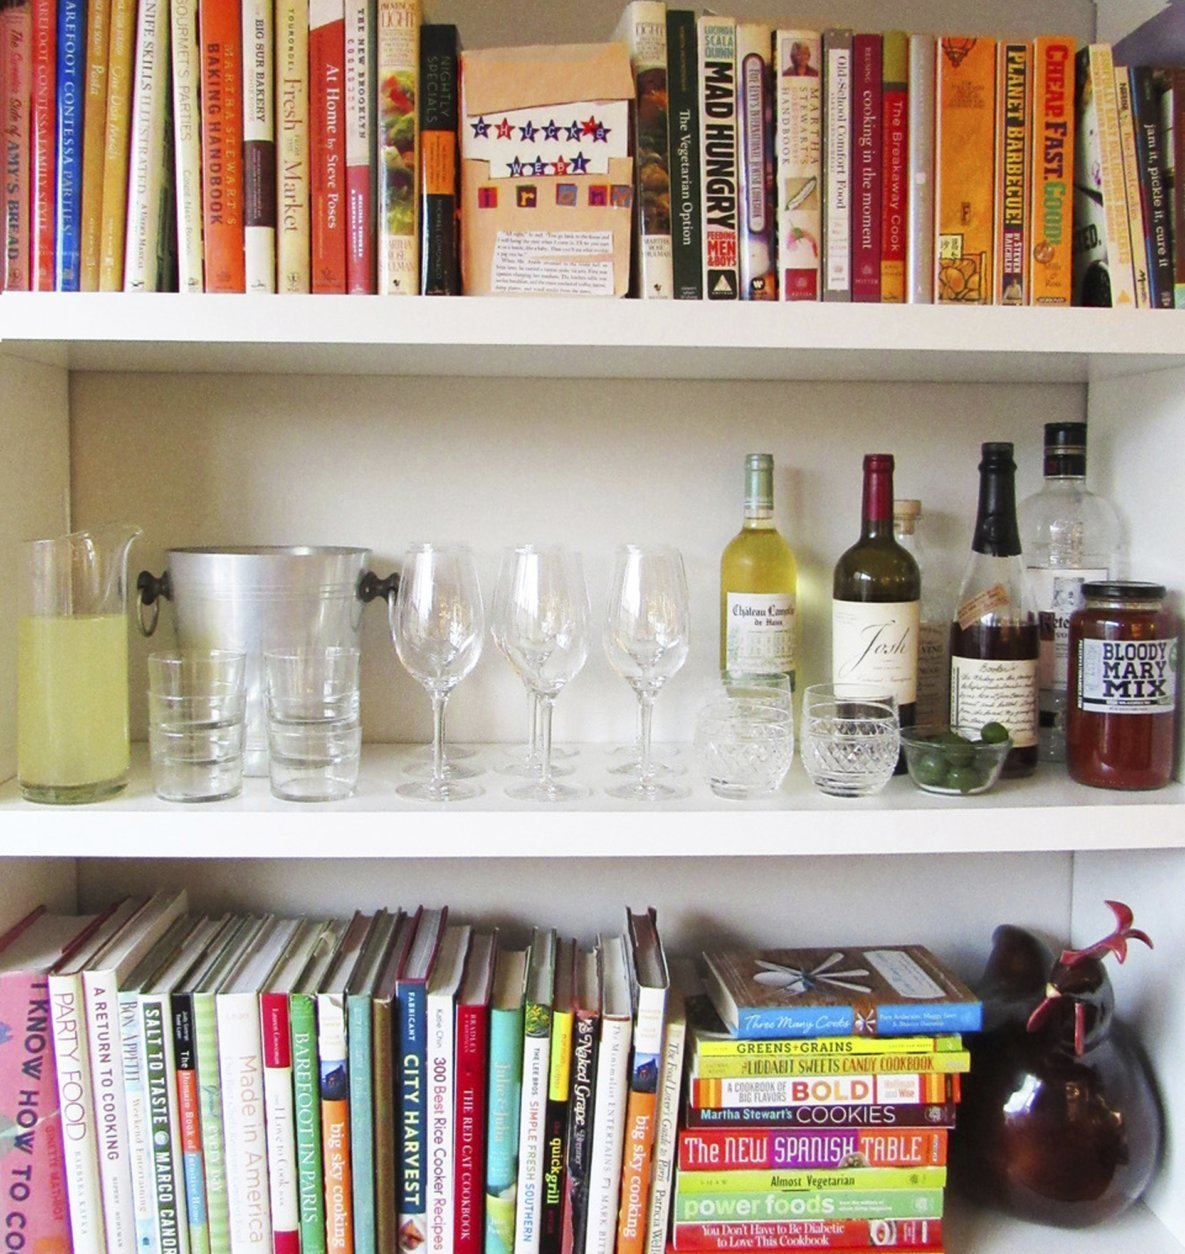 This November 2015 photo provided by Katie Workman shows a temporary bar for a party being set up in a bookcase in New York. Making the most of different areas of your home is very helpful when you have a big group over. (Laura Agra/Katie Workman via AP)